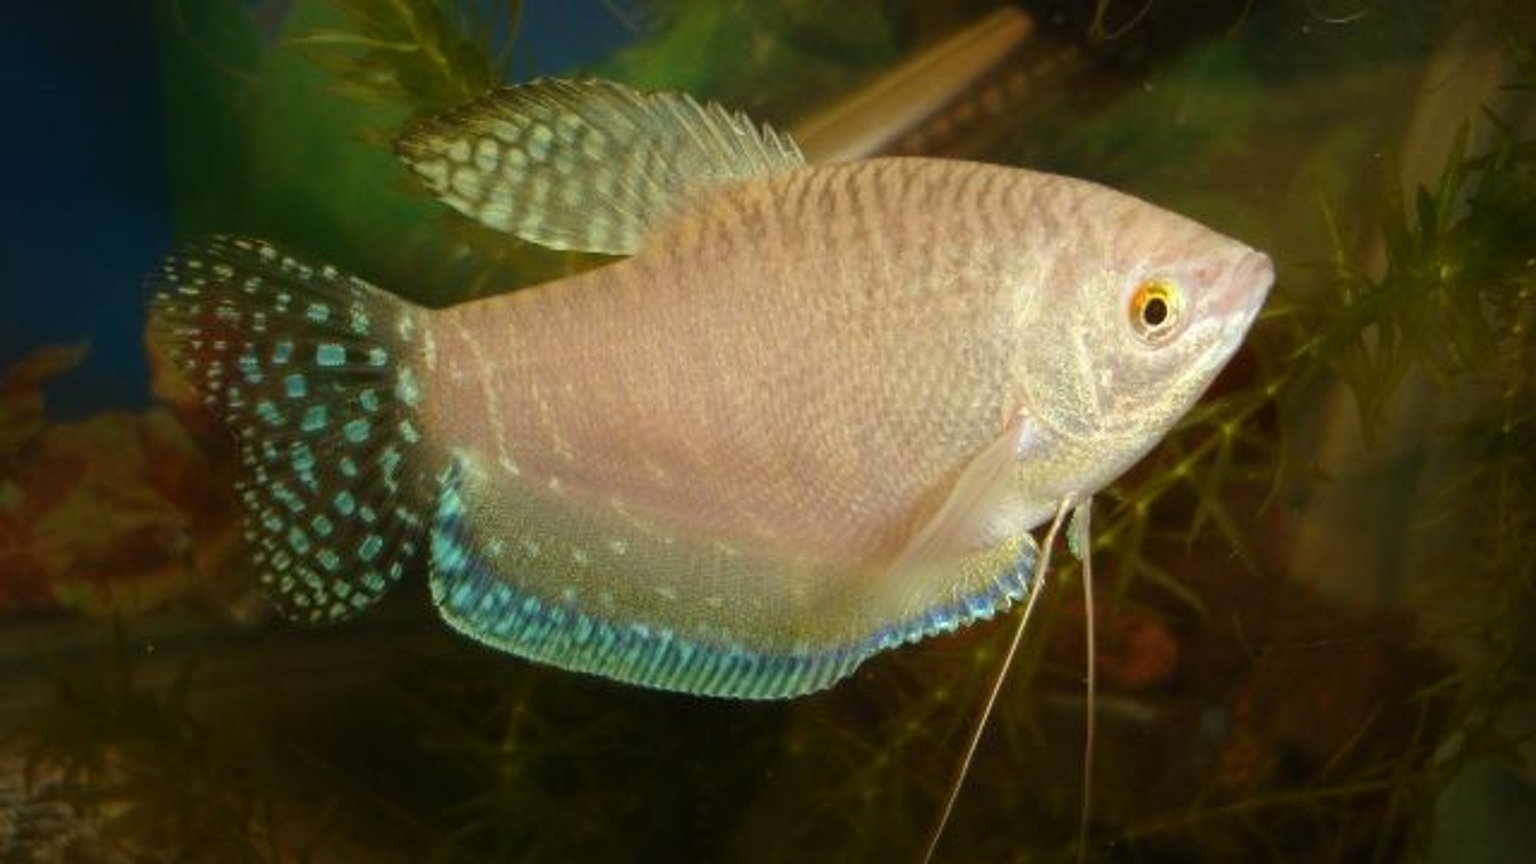 freshwater fish - trichogaster trichopterus - blue gourami stocking in 70 gallons tank - gorami